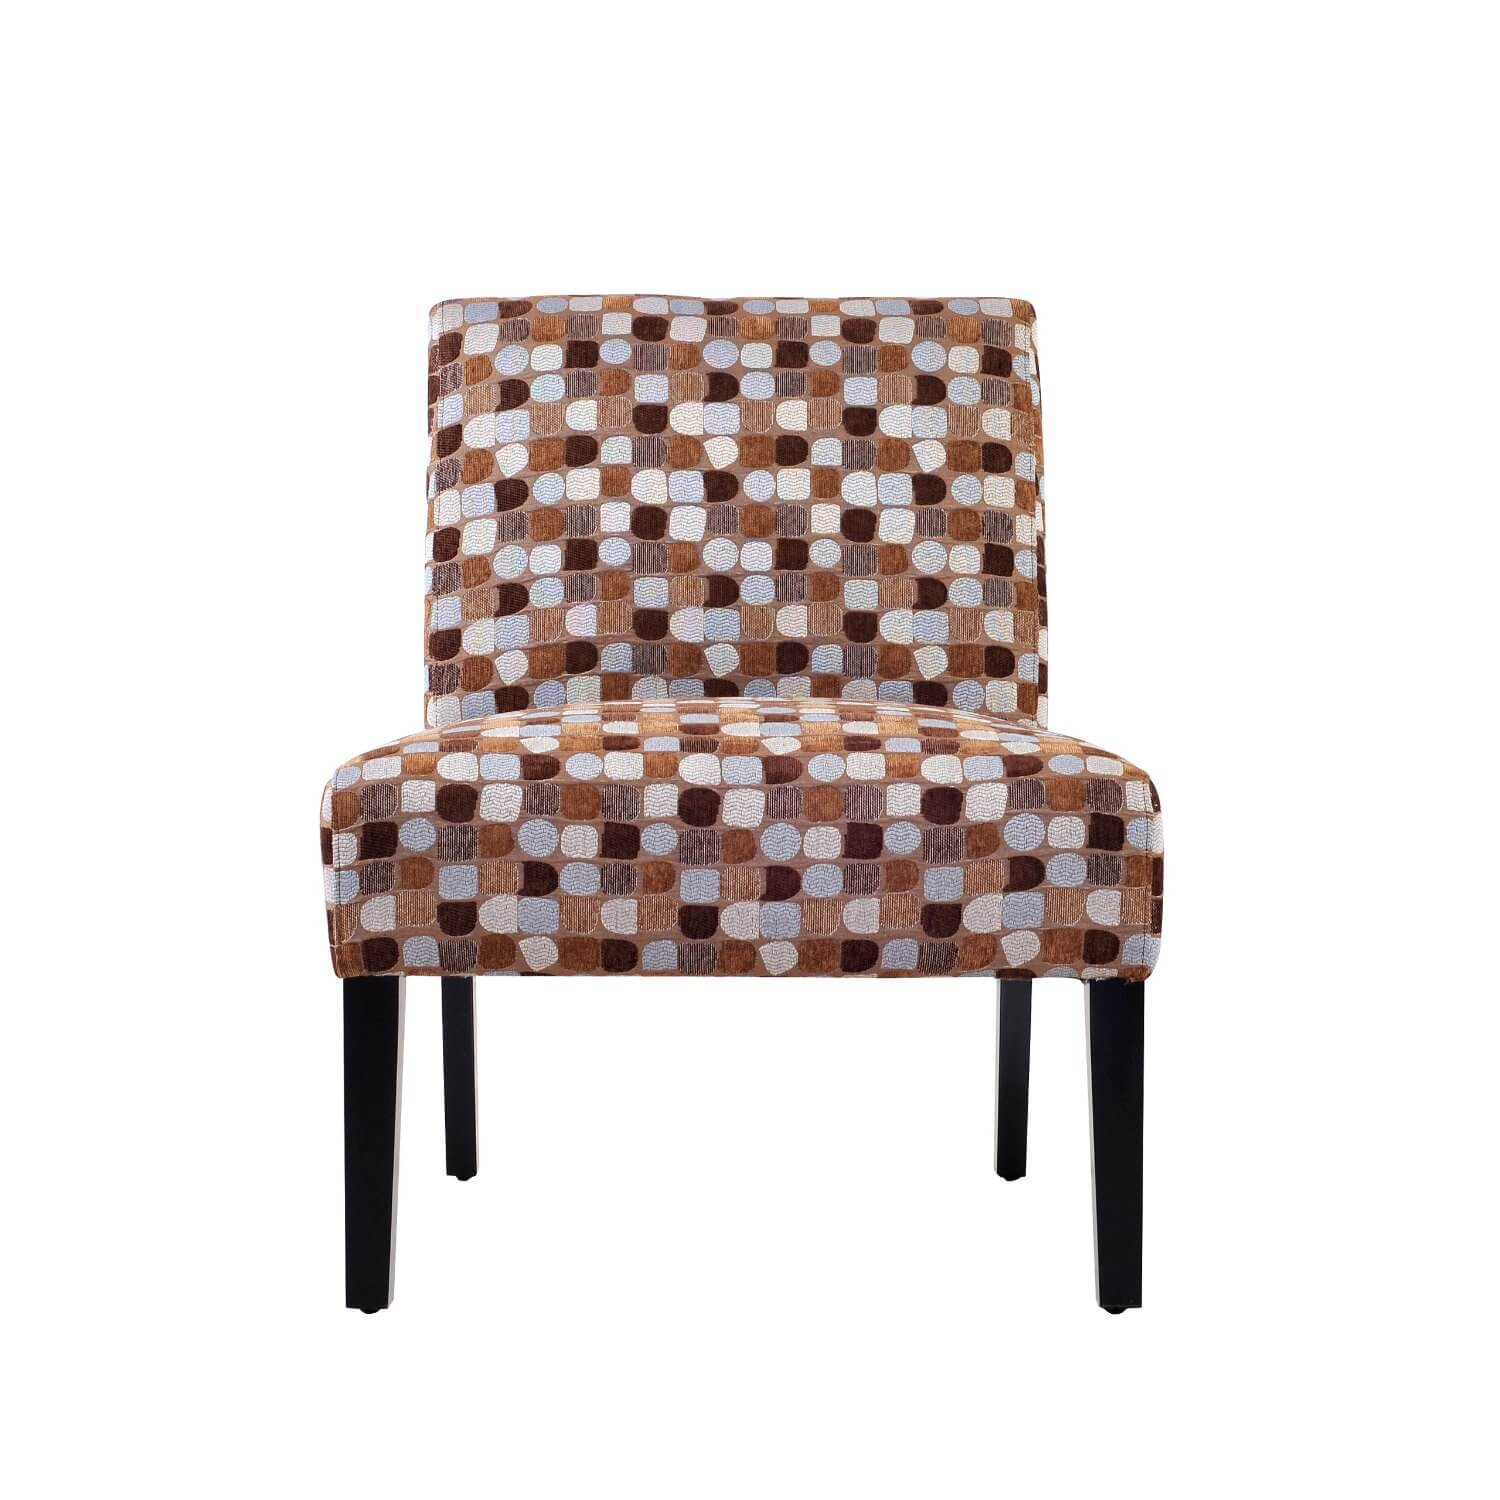 Accent Chairs Under 100 | Wayfair Chairs | Living Room Chairs Target